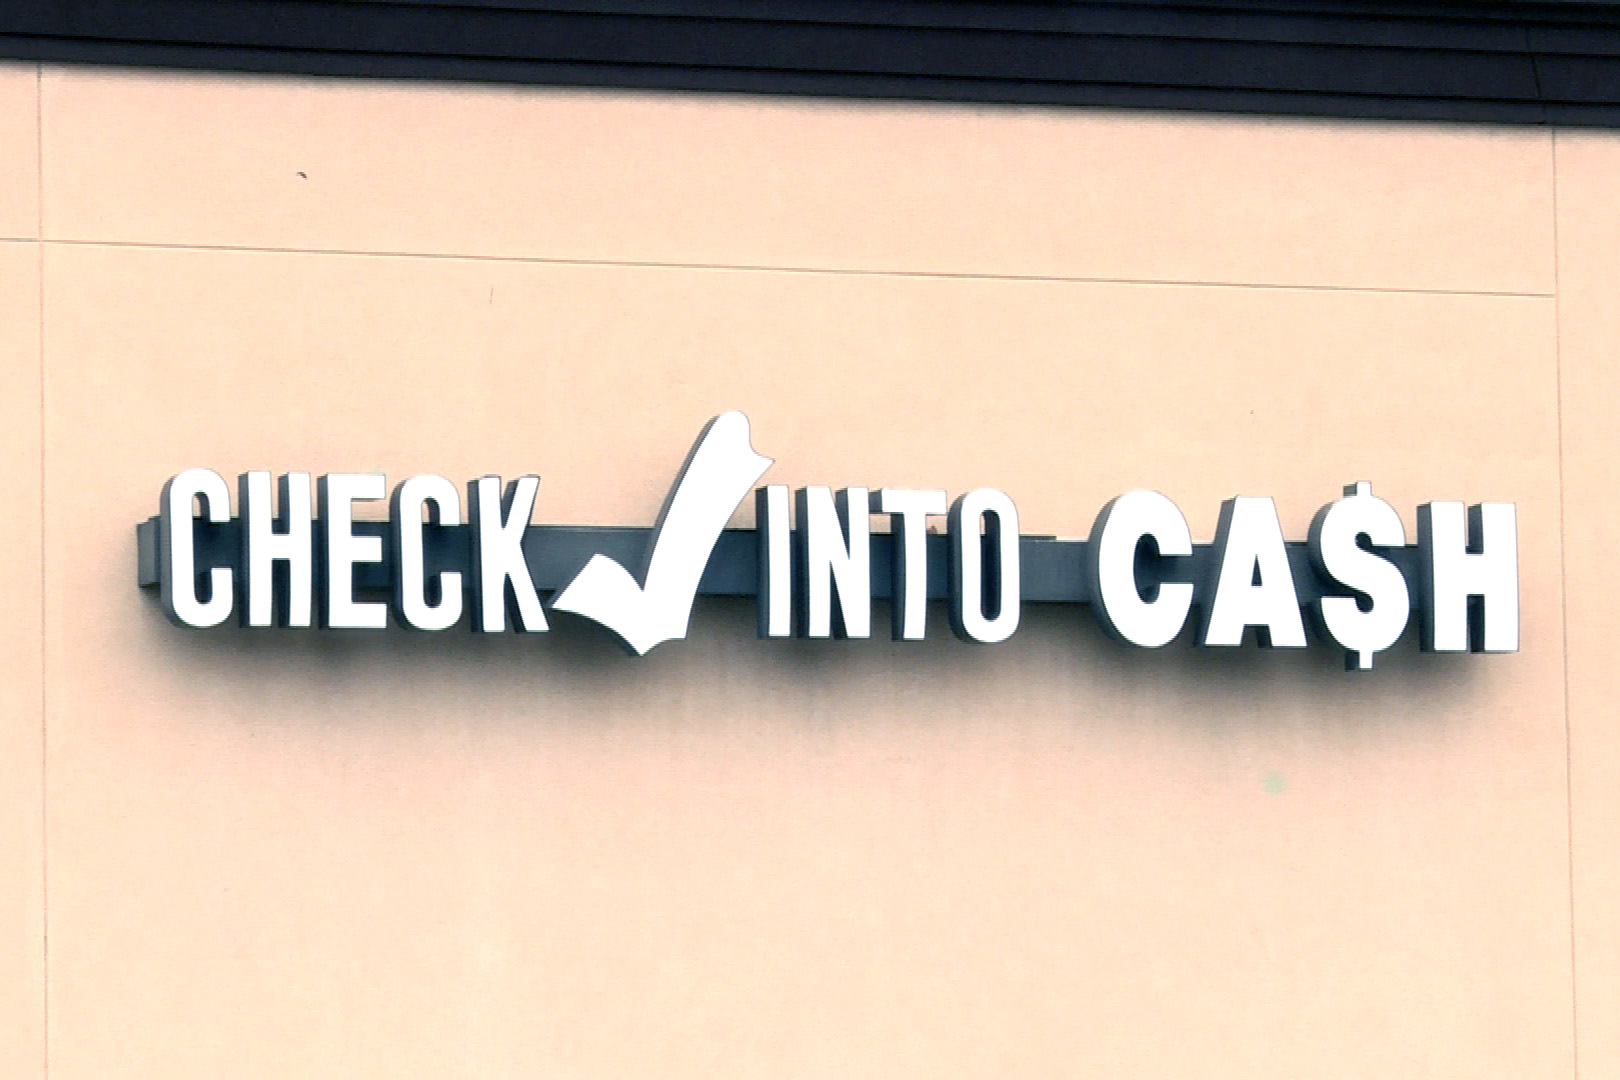 check into cash payday loan sign